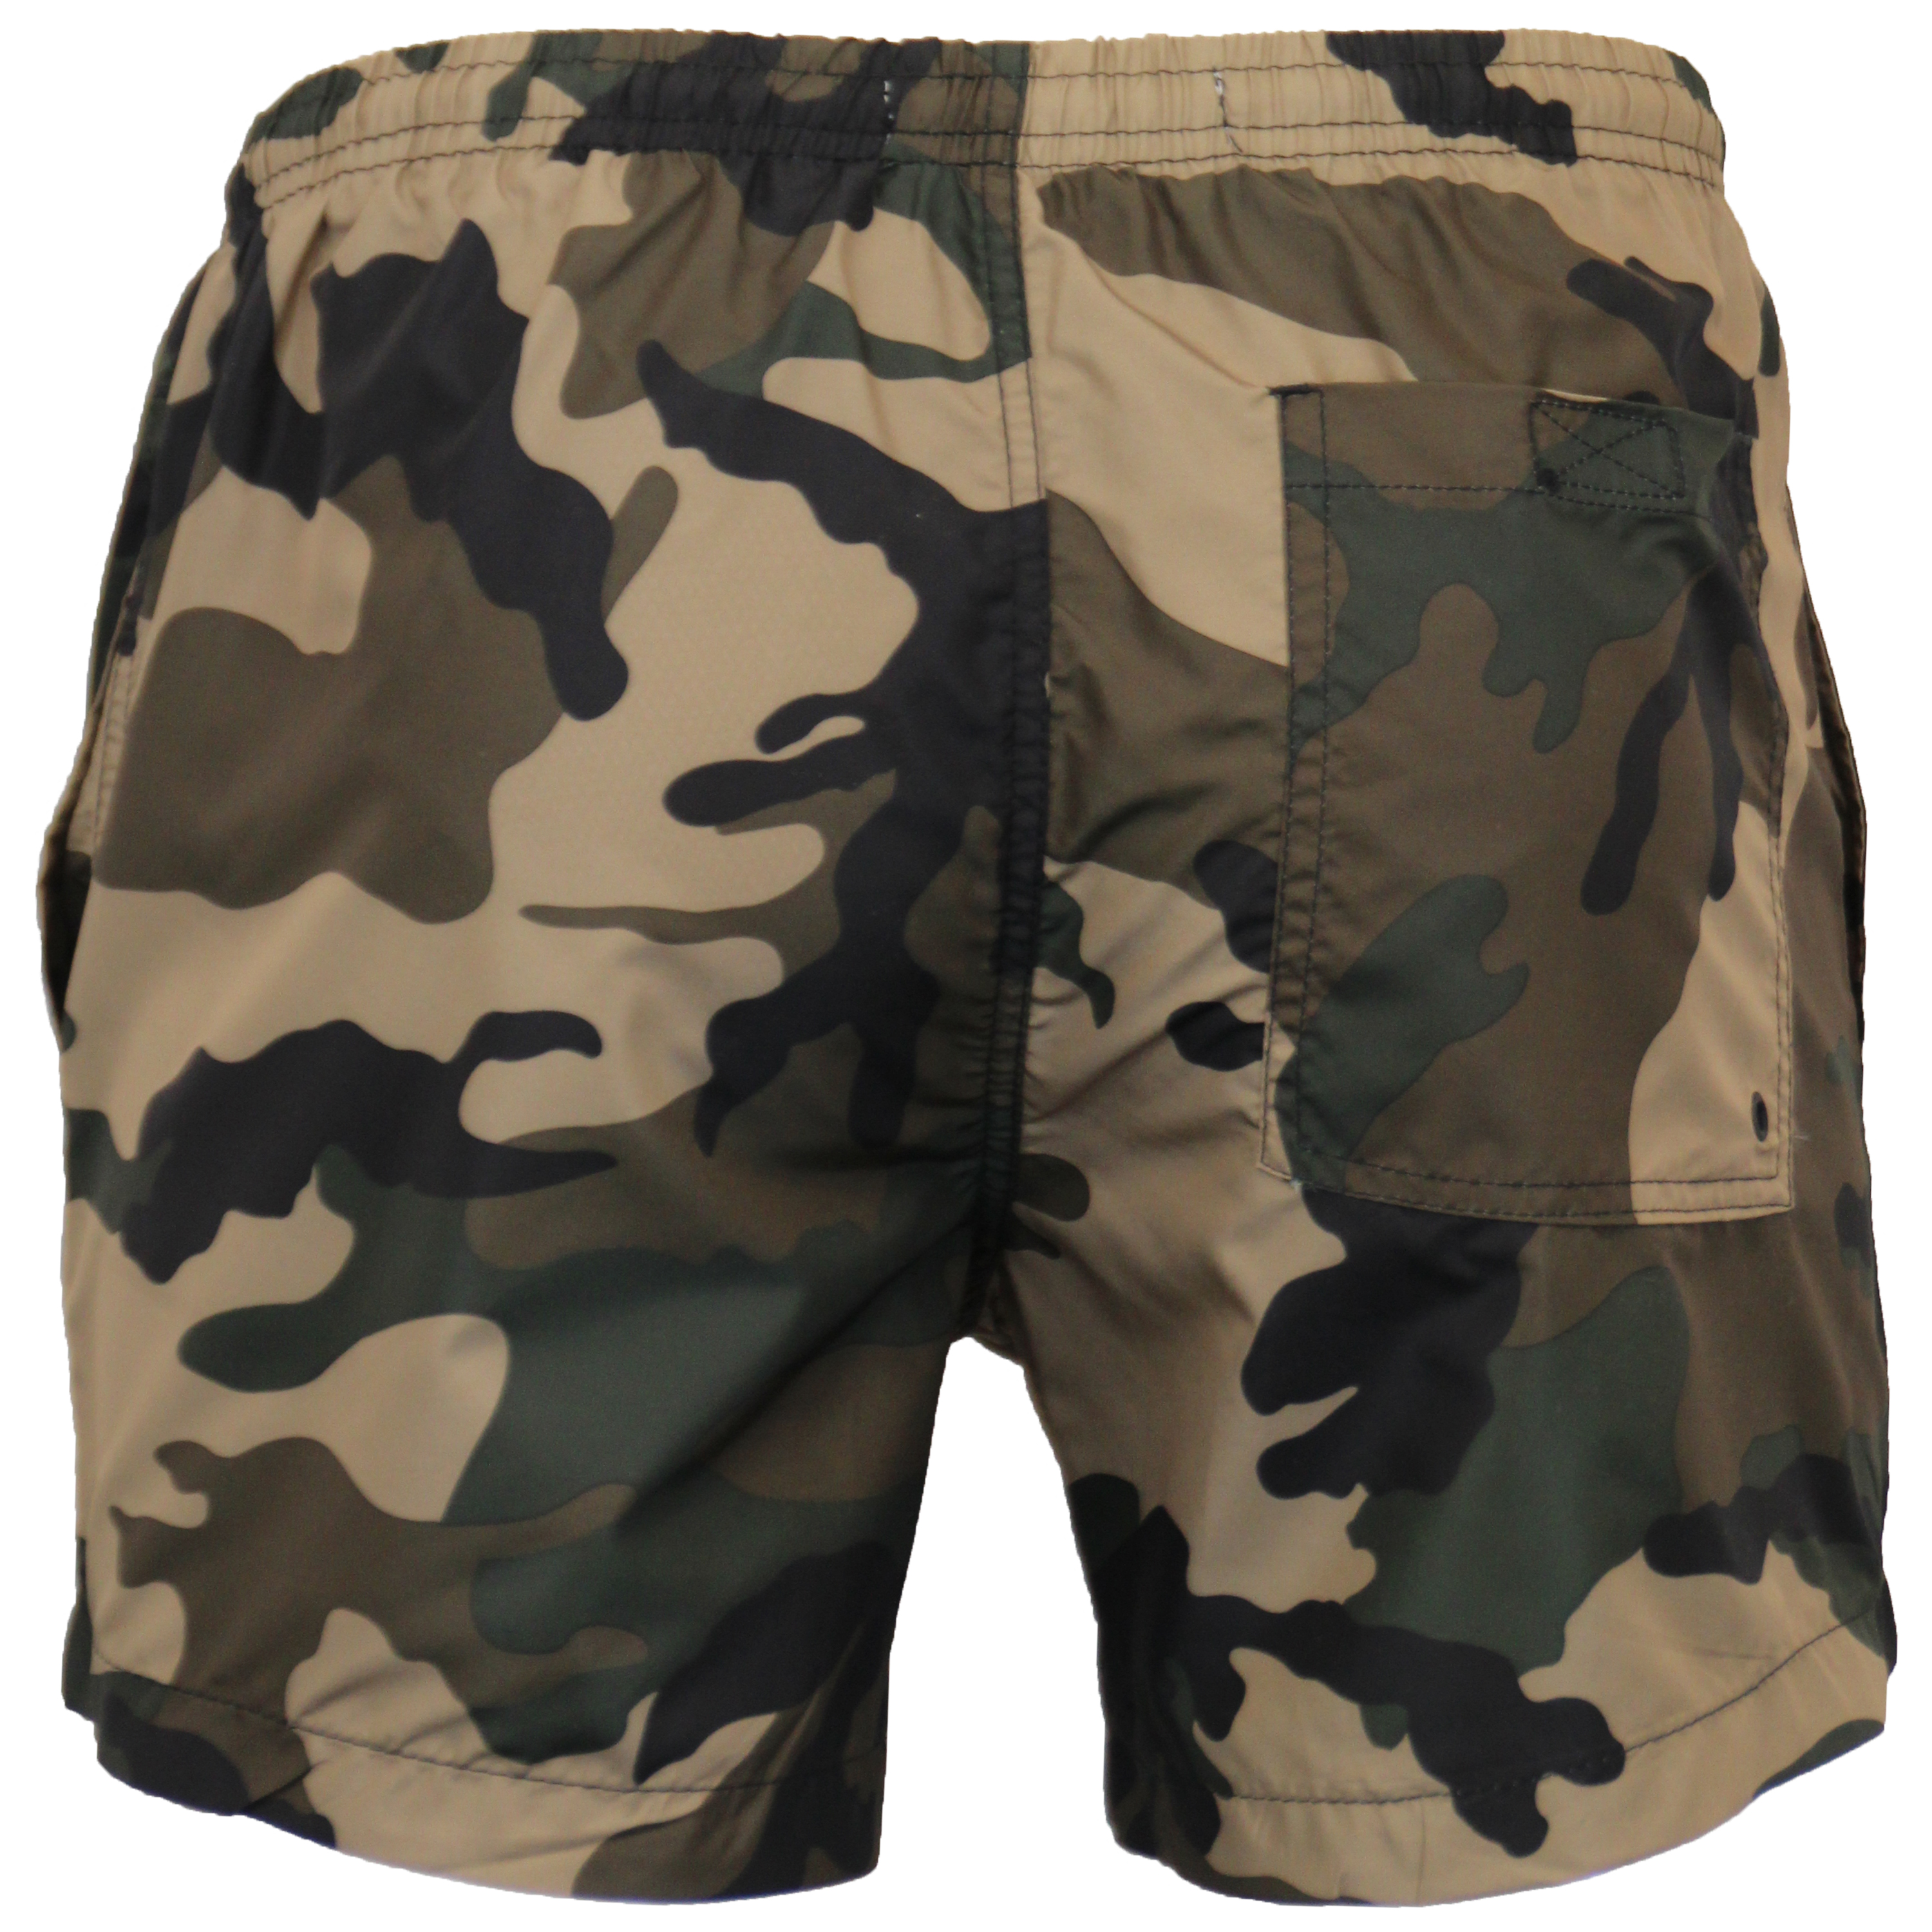 Mens-Swimming-Shorts-Brave-Soul-Camo-Military-Trunks-Mesh-Lined-Beach-Summer-New thumbnail 9